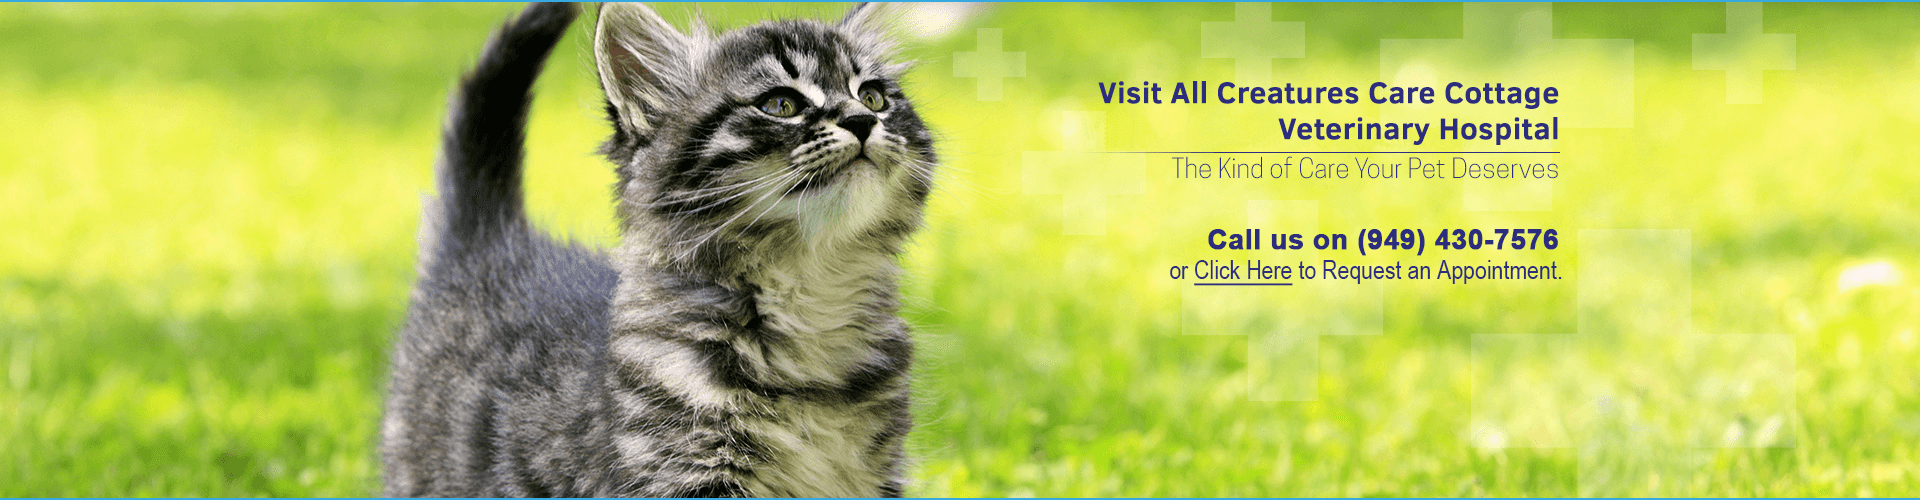 Veterinary Hospital Costa Mesa Cat treatments banner